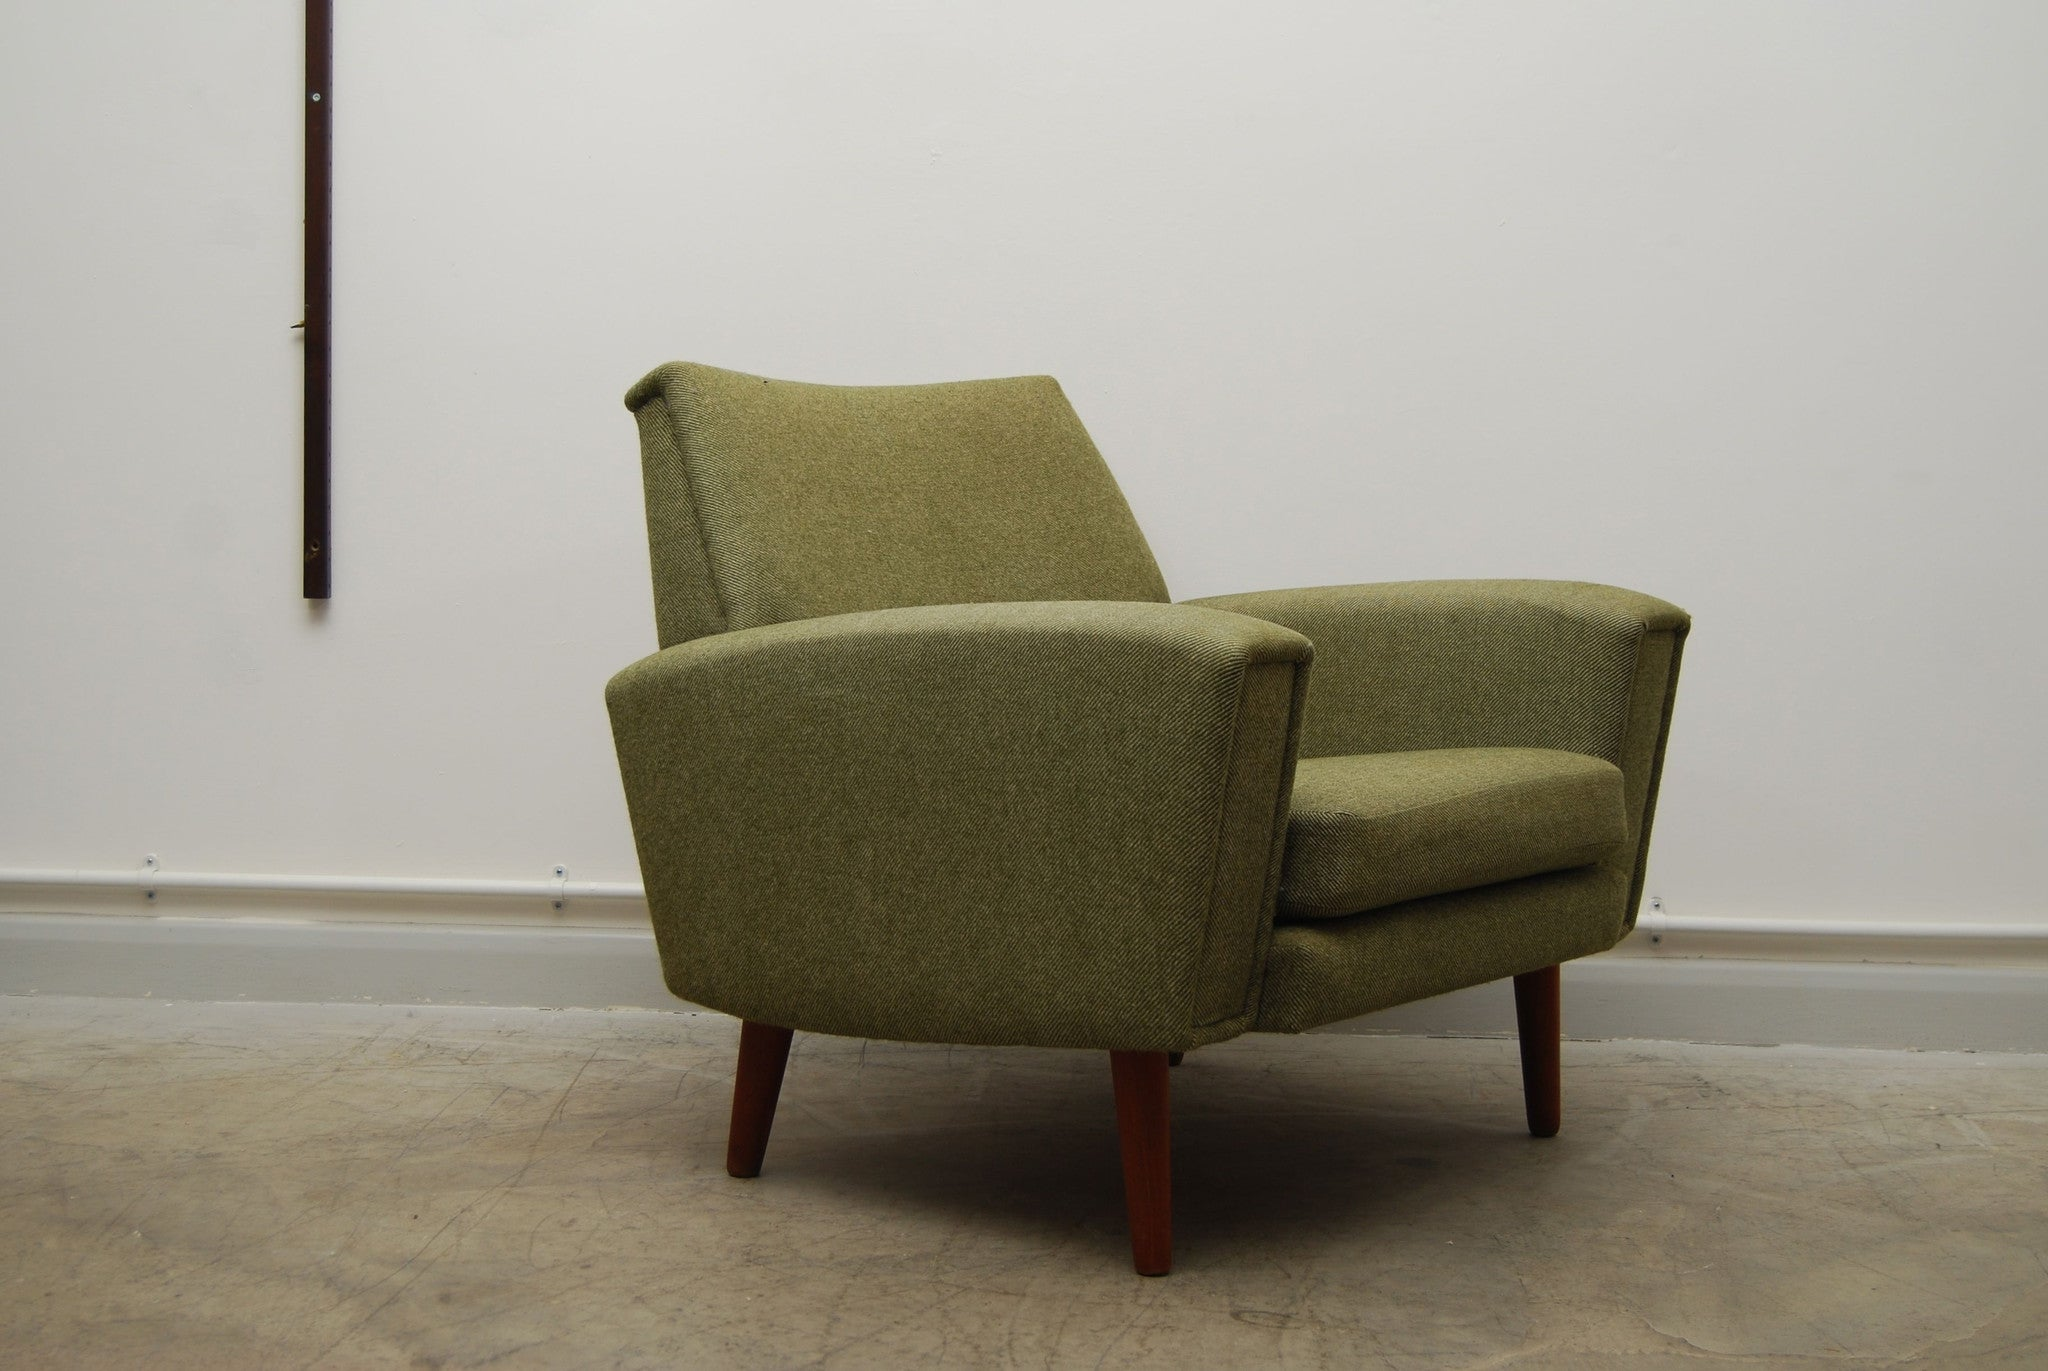 Chase & Sorensen Lowback lounge chair in tweed